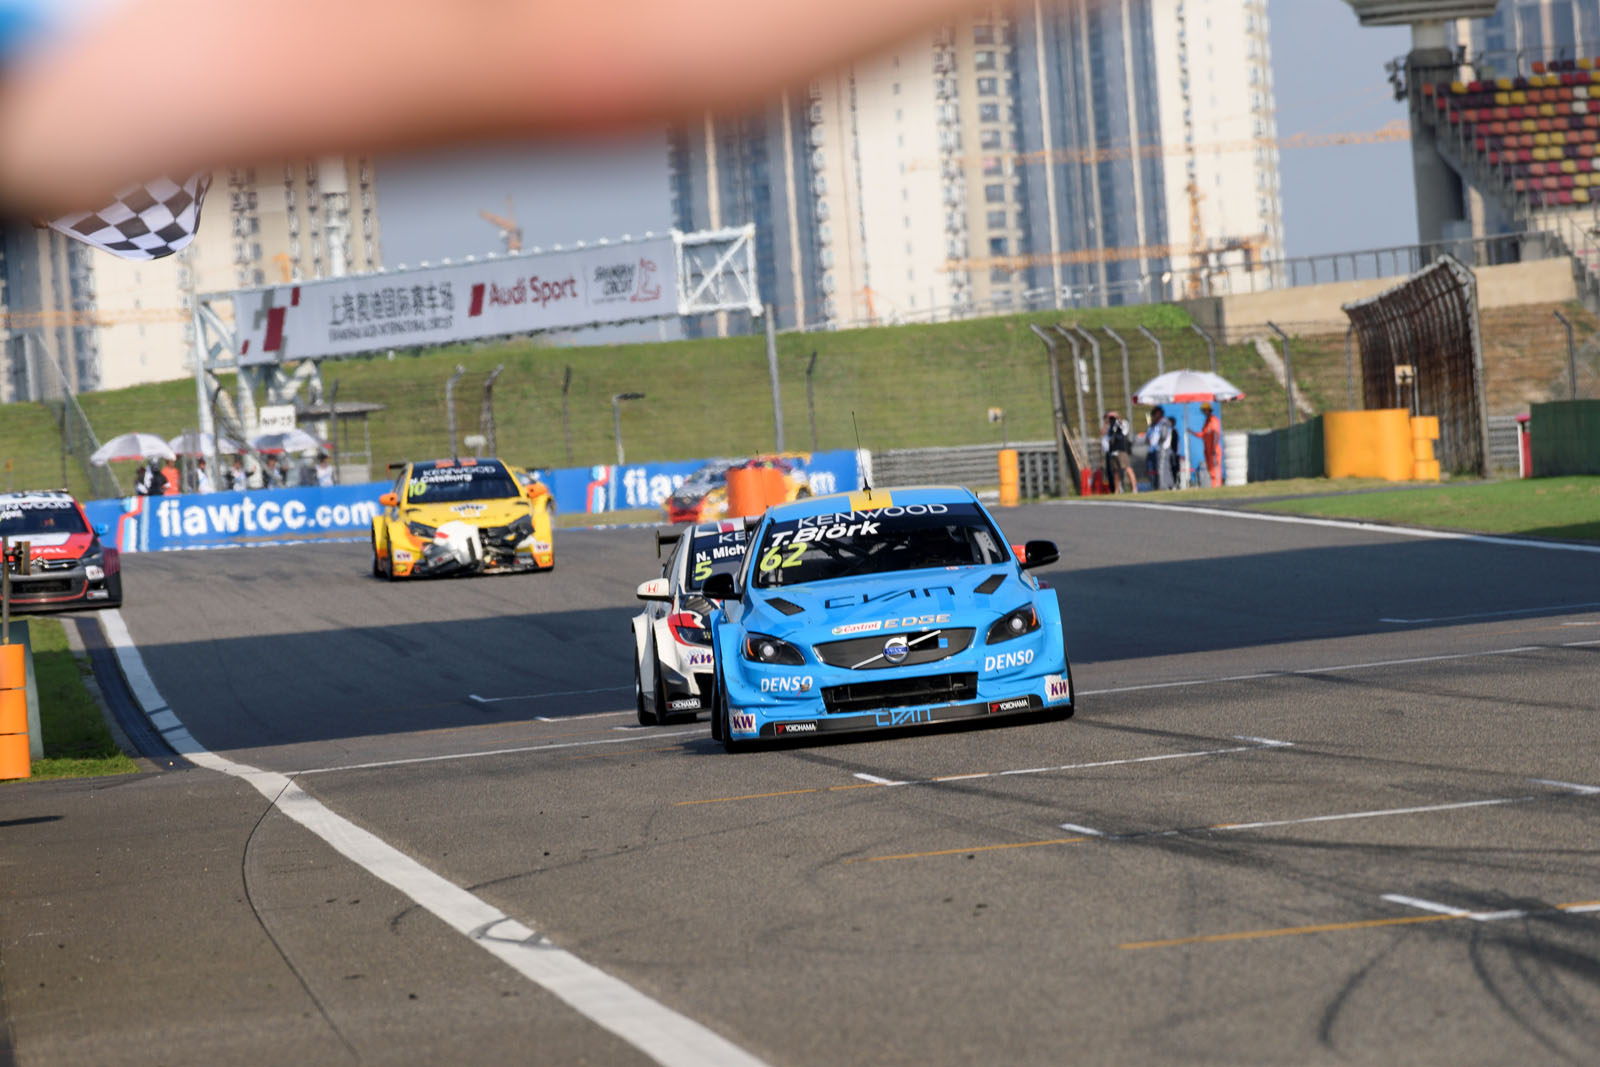 199381_Thed_Bj_rk_claims_maiden_WTCC_victory_on_a_historic_weekend_for_Polestar.jpg